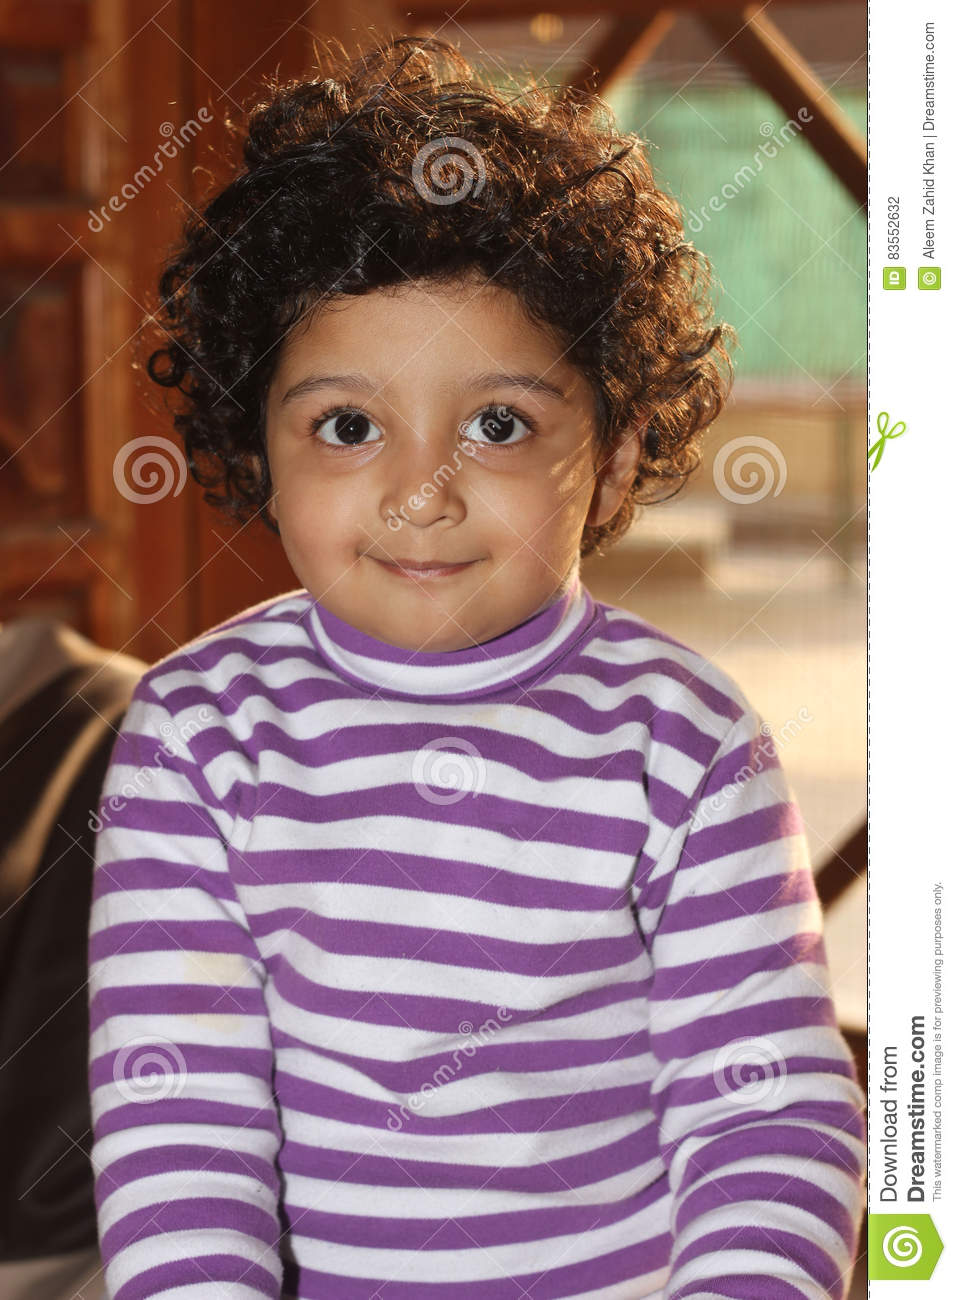 Cute Curly Hair Light Skin South Asian Boy Stock Photo - Image of